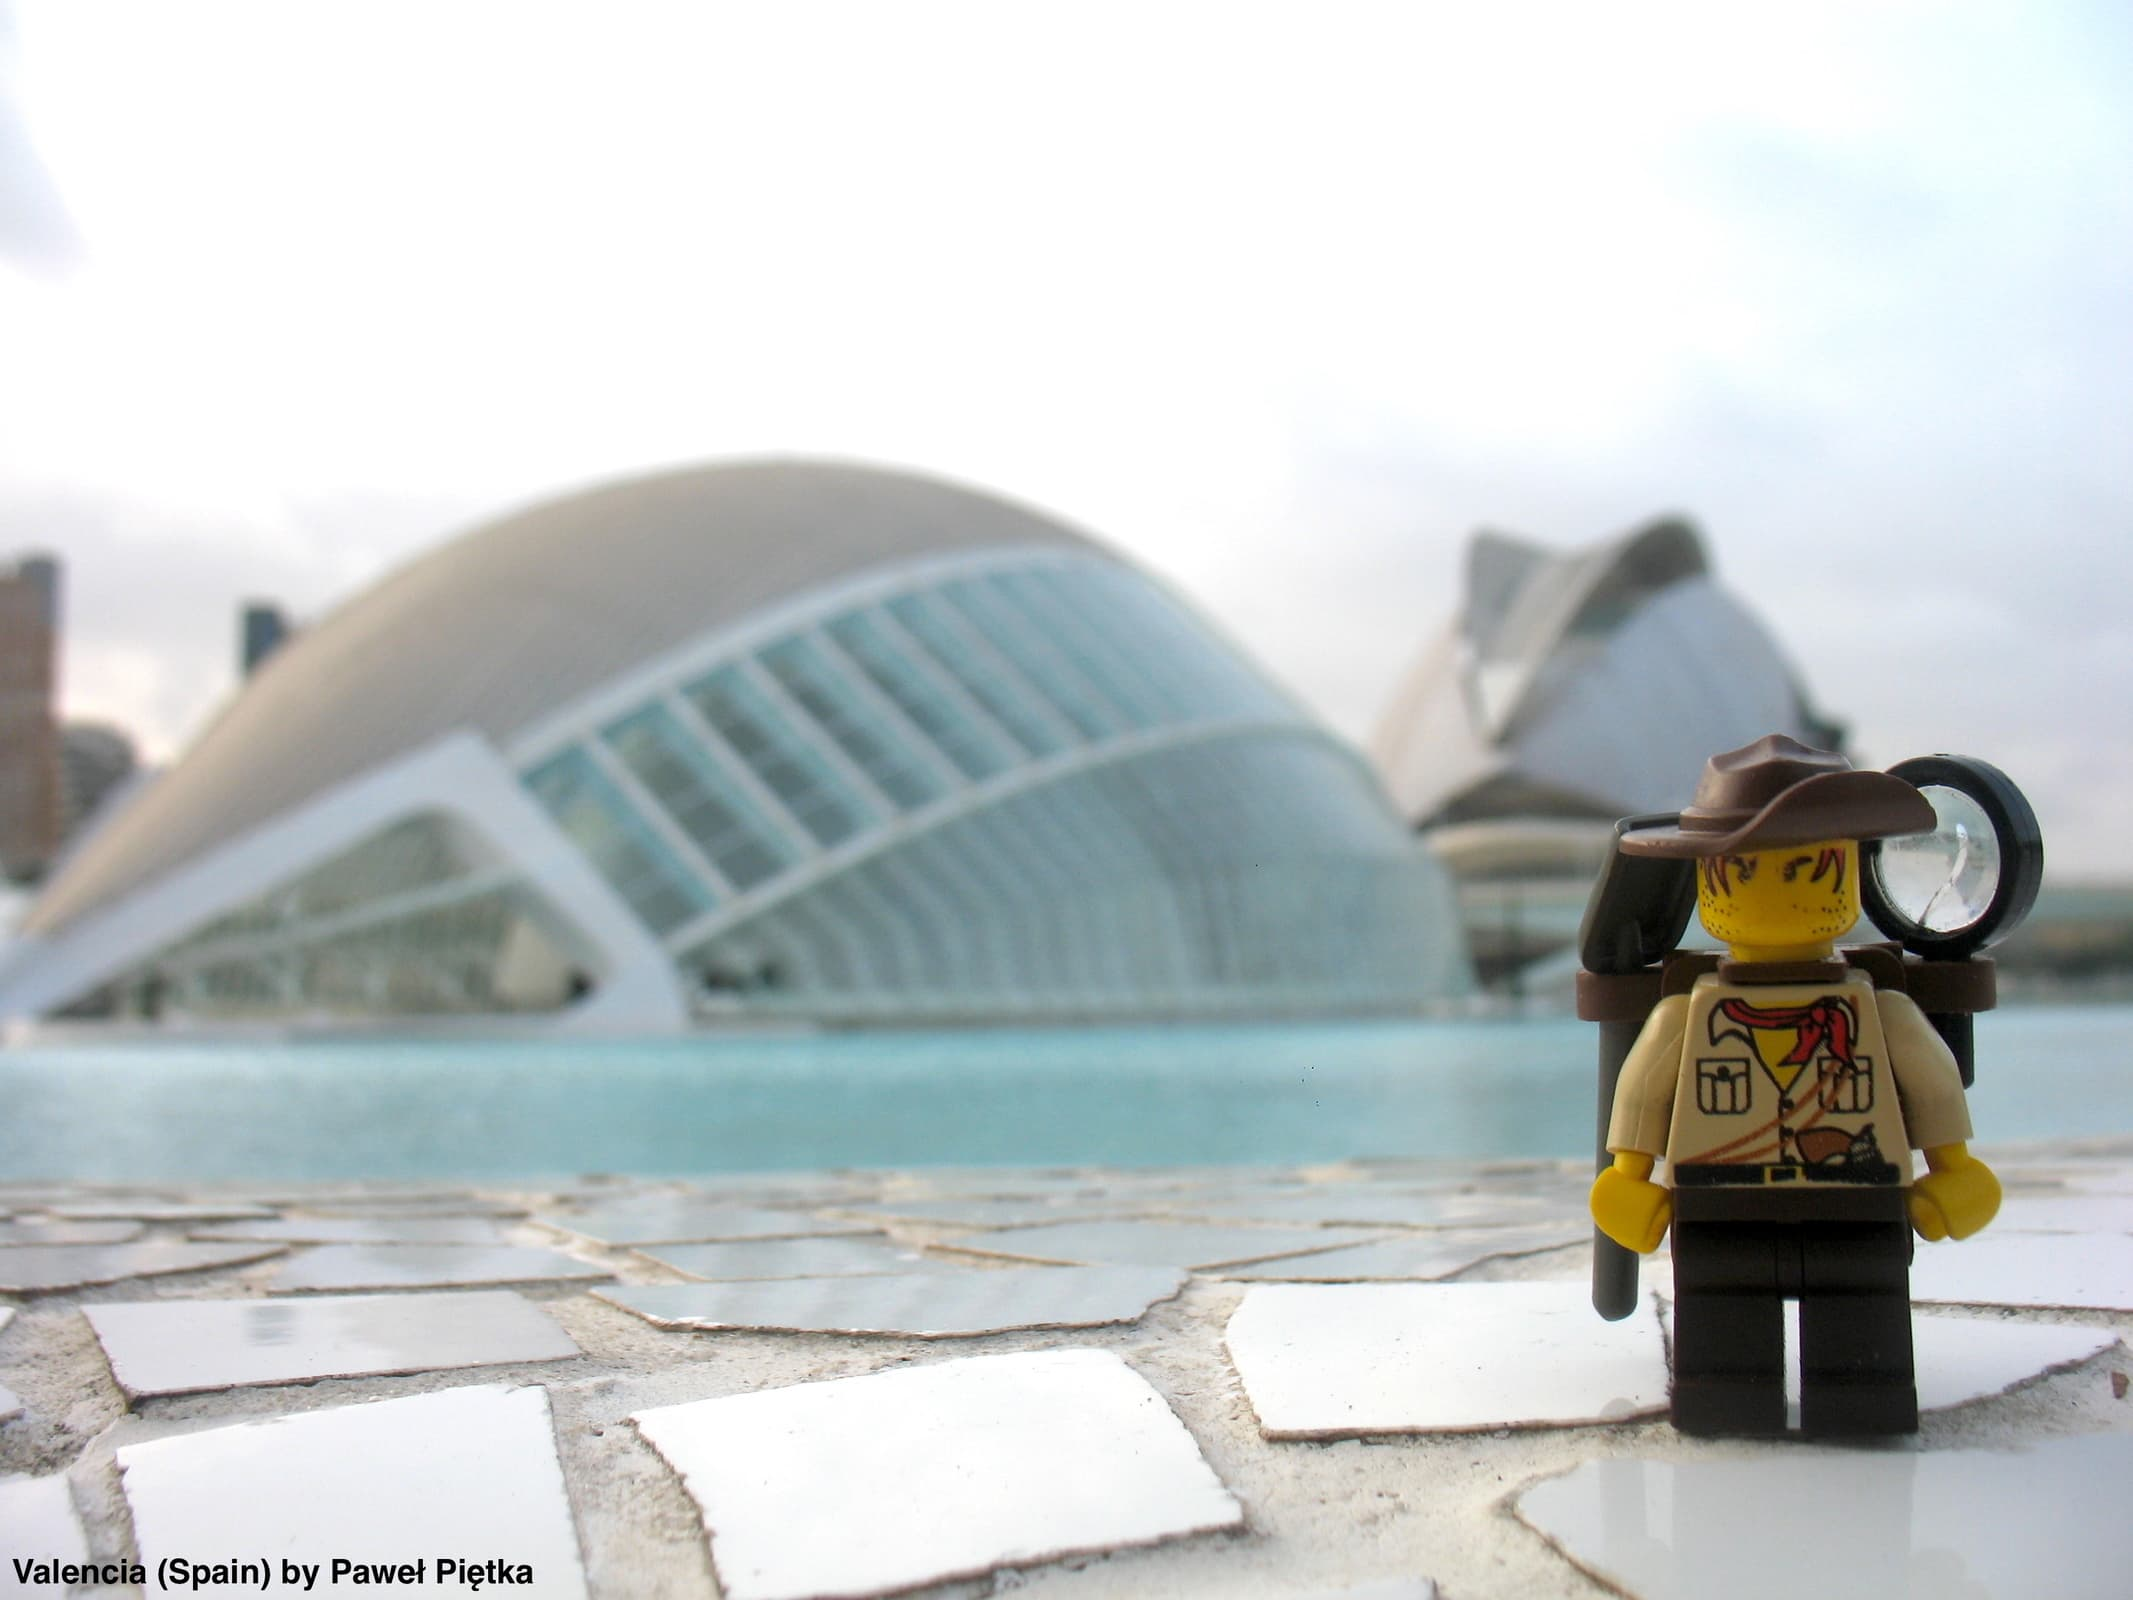 Valencia (Spain) - City of Arts and Sciences